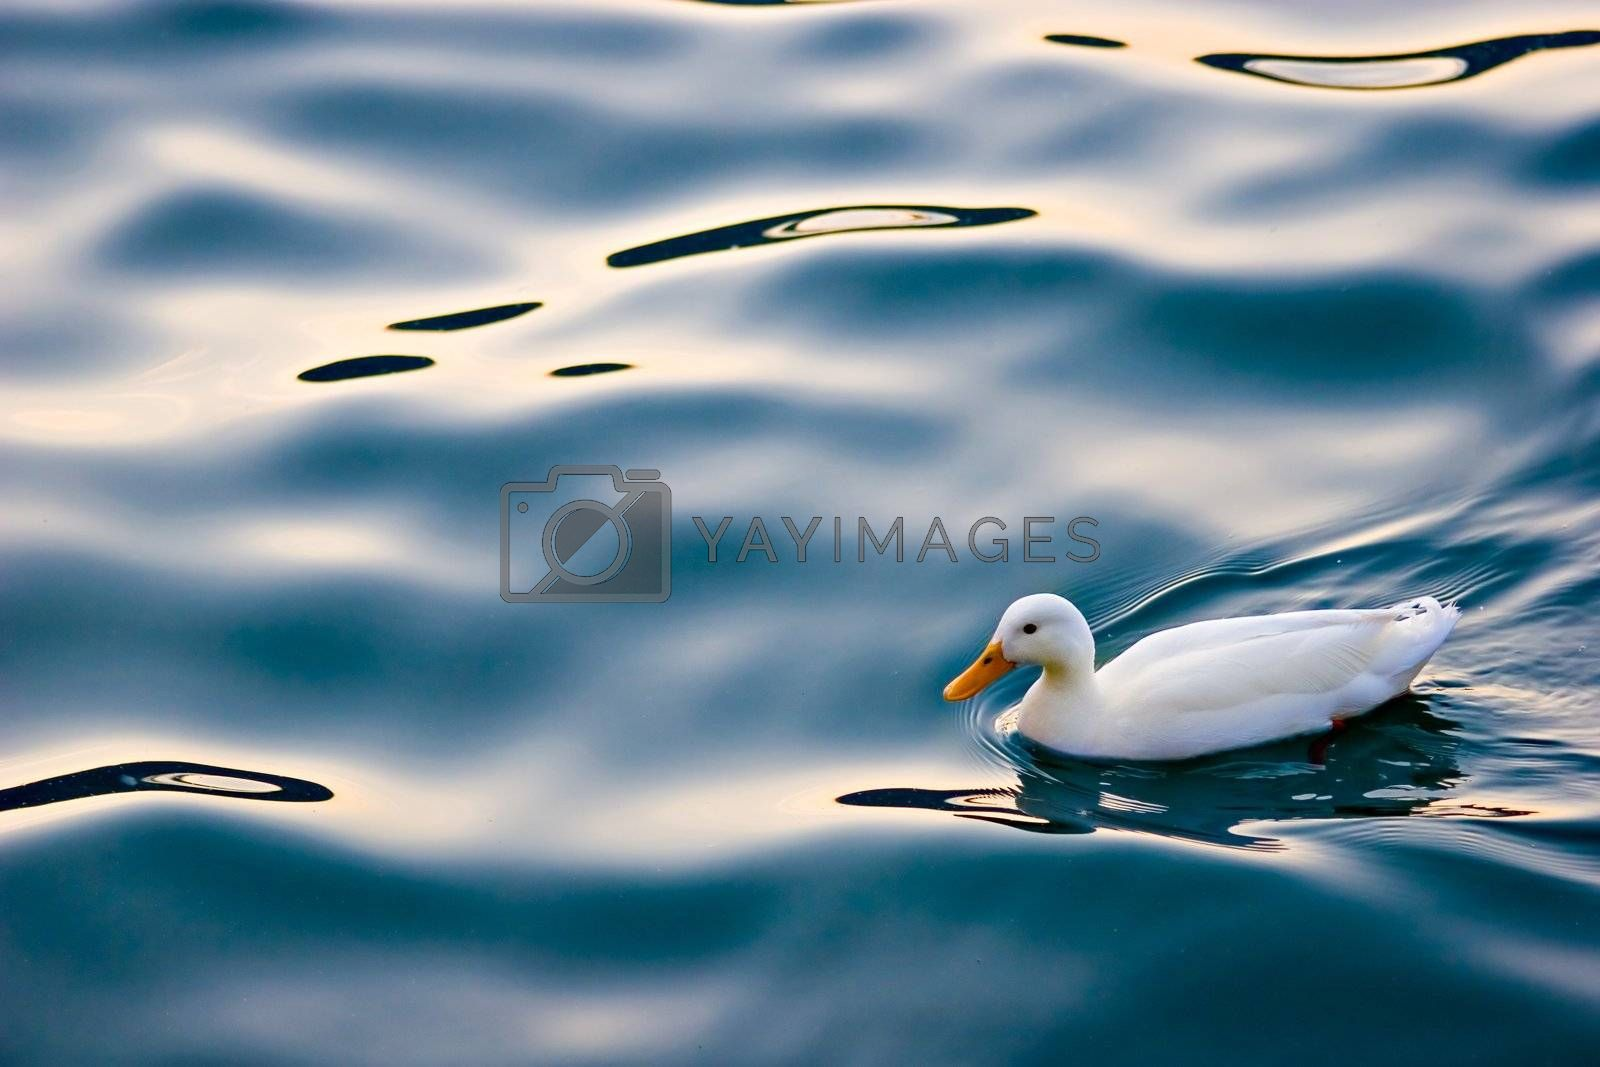 Cute white duck swimming on a lake's calm waters.